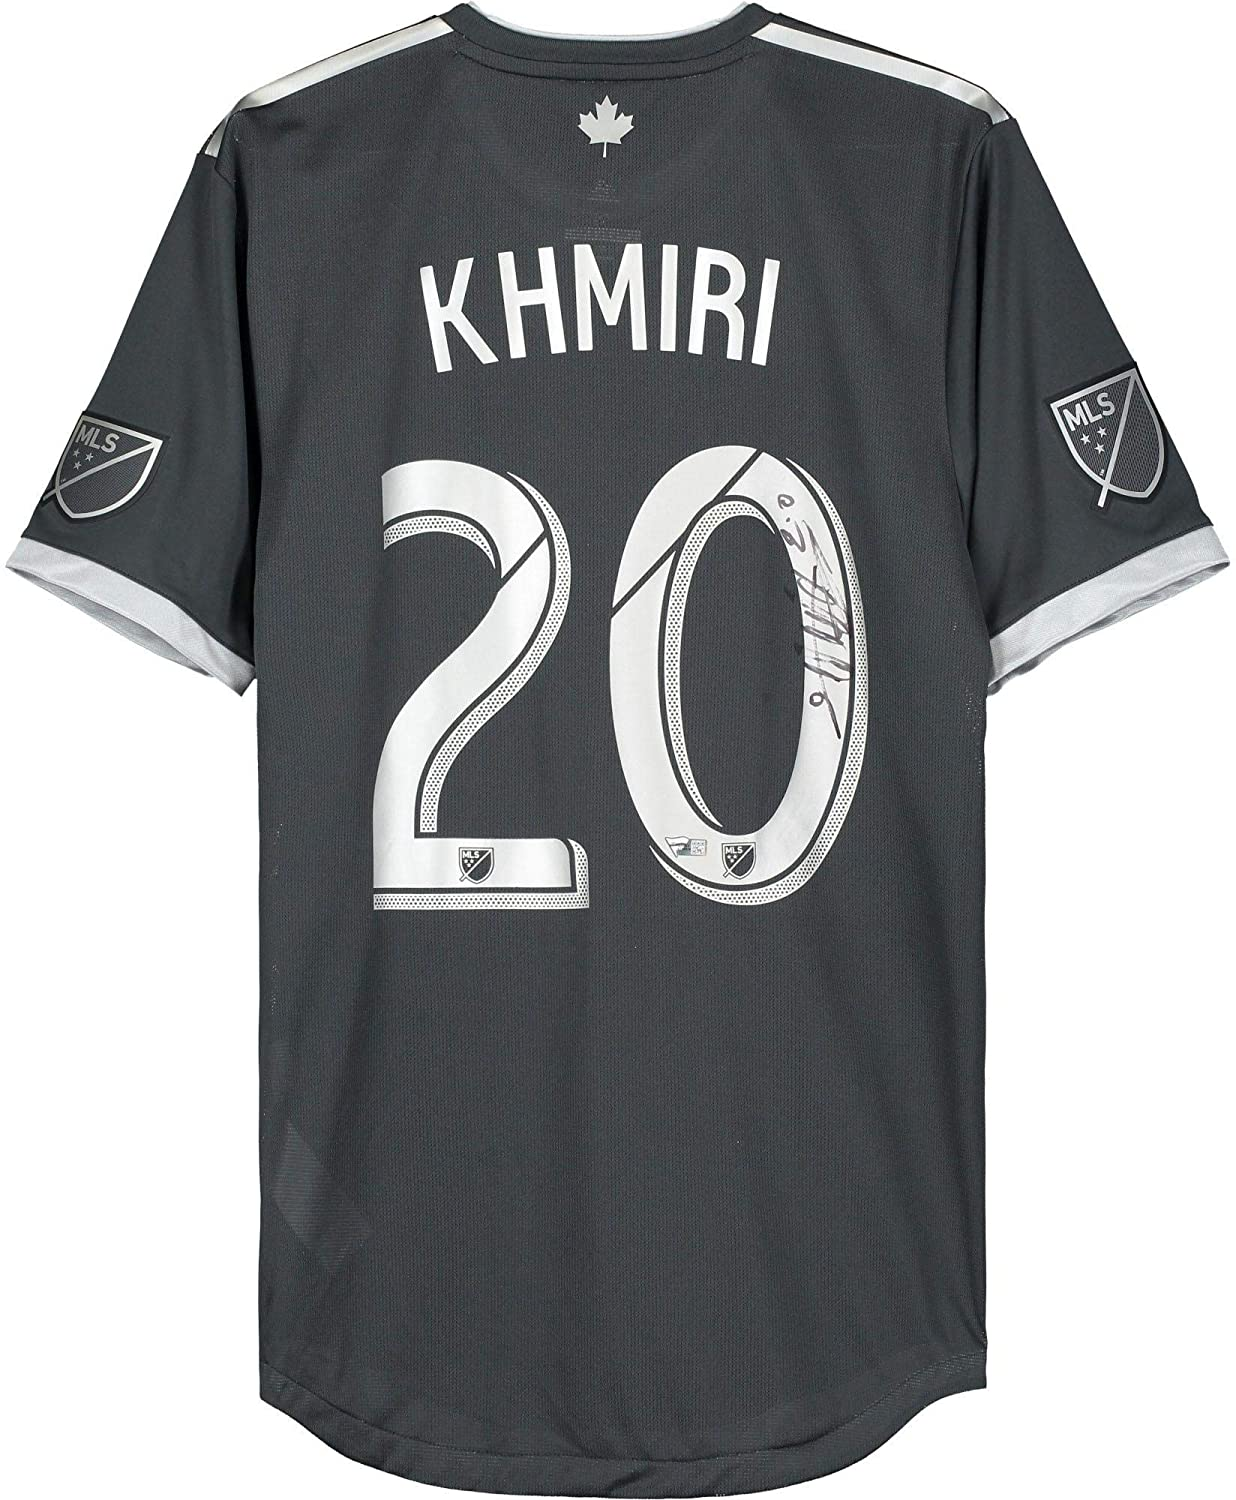 Jasser Khmiri Vancouver Whitecaps FC Autographed Match-Used #20 Gray Jersey from the 2019 MLS Season - Fanatics Authentic Certified